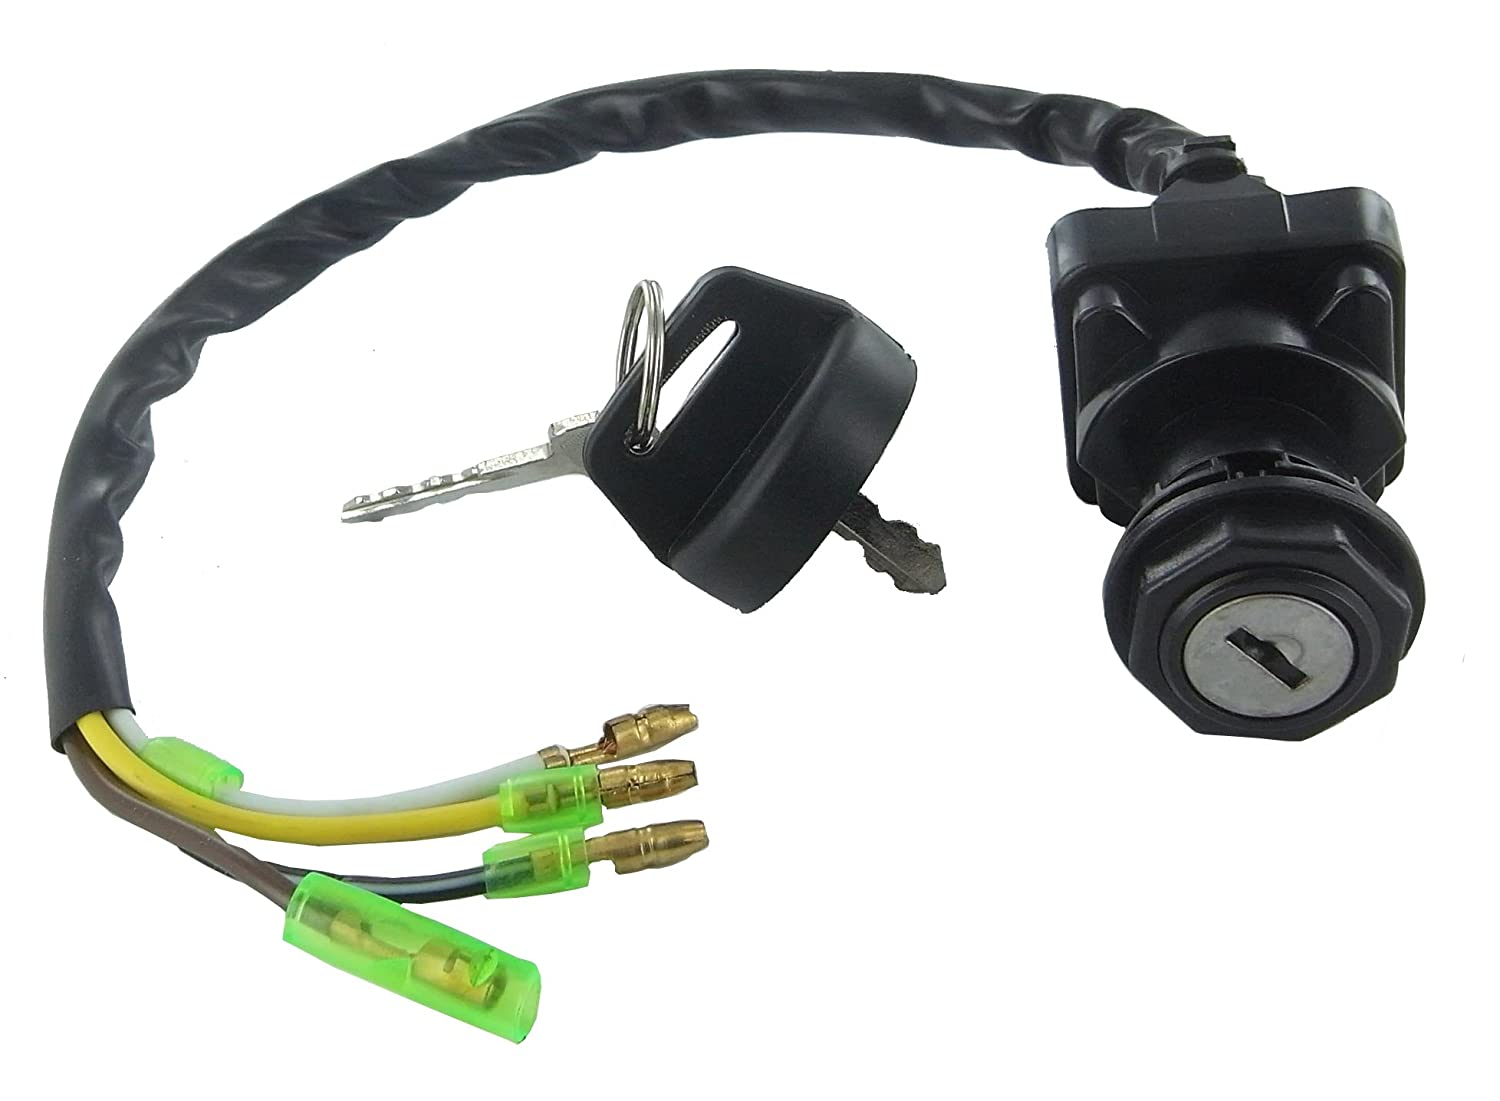 Amazon.com Ignition Key Switch Kawasaki KLF220 Bayou 220 1988 1989 1990 1991 1992 1993 1994 1995 ATV Switch NEW Automotive  sc 1 st  Amazon.com : kawasaki bayou 220 wiring harness - yogabreezes.com